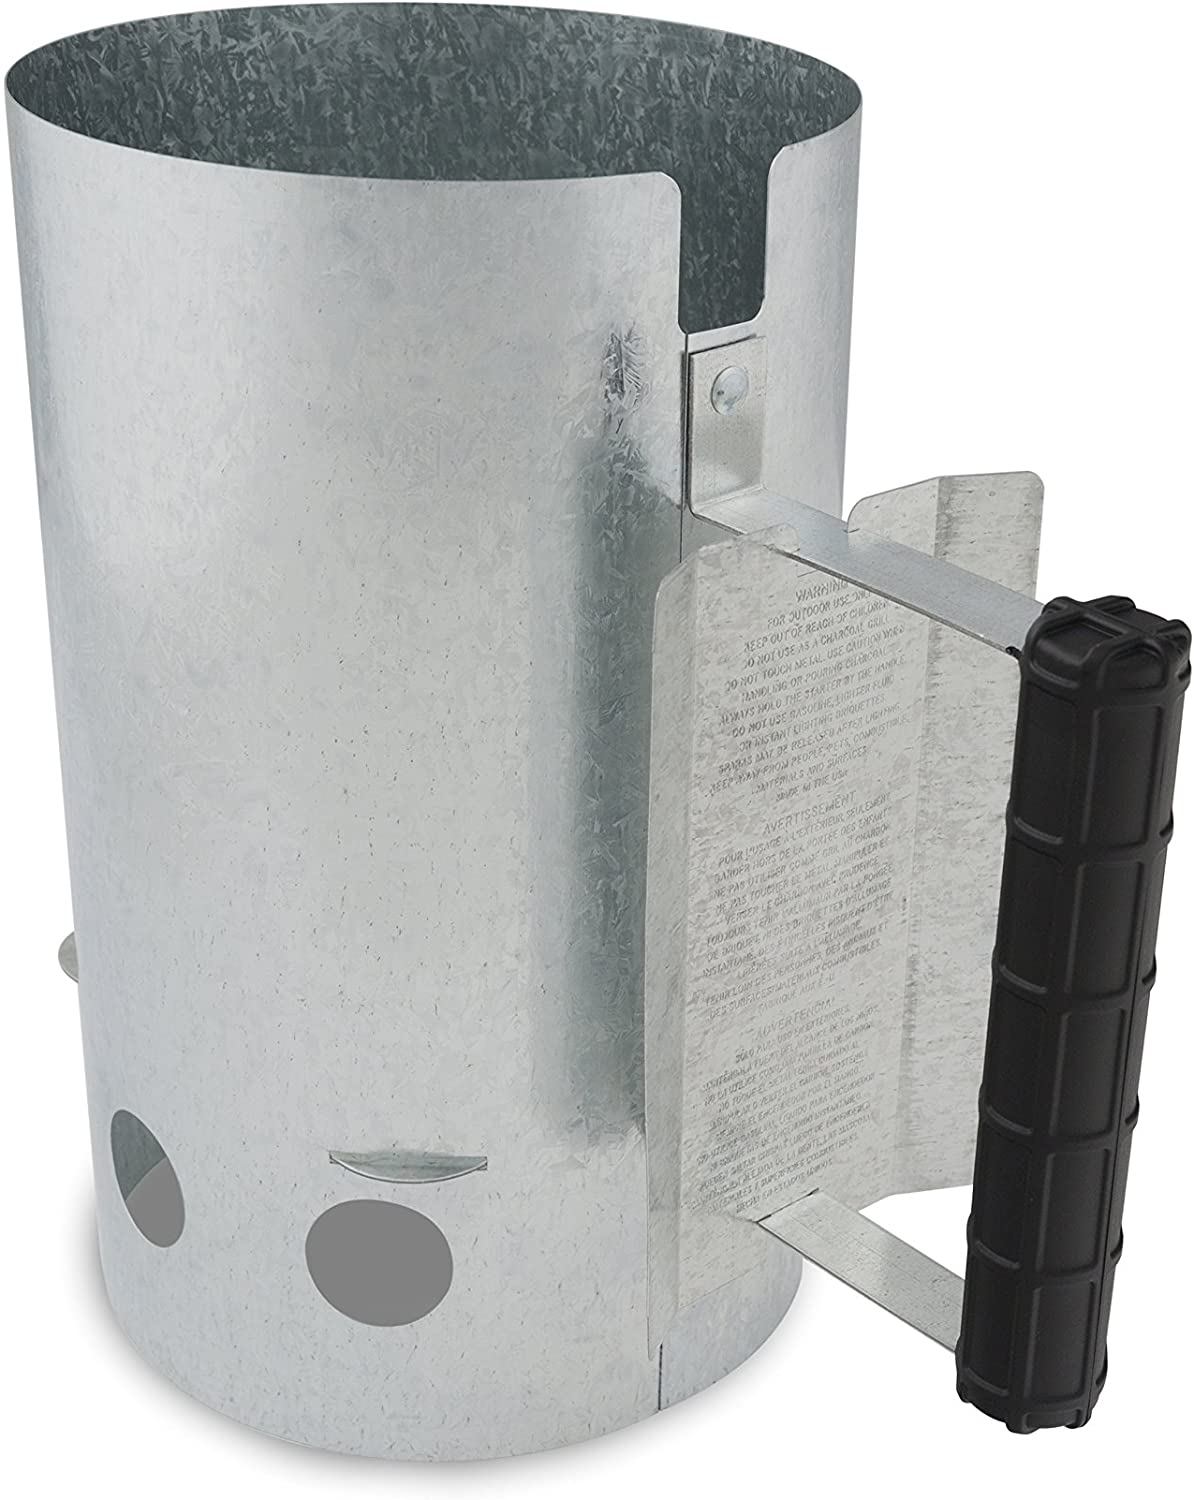 GrillPro 2021 new 39470 Chimney Starter Charcoal Silver Bargain sale